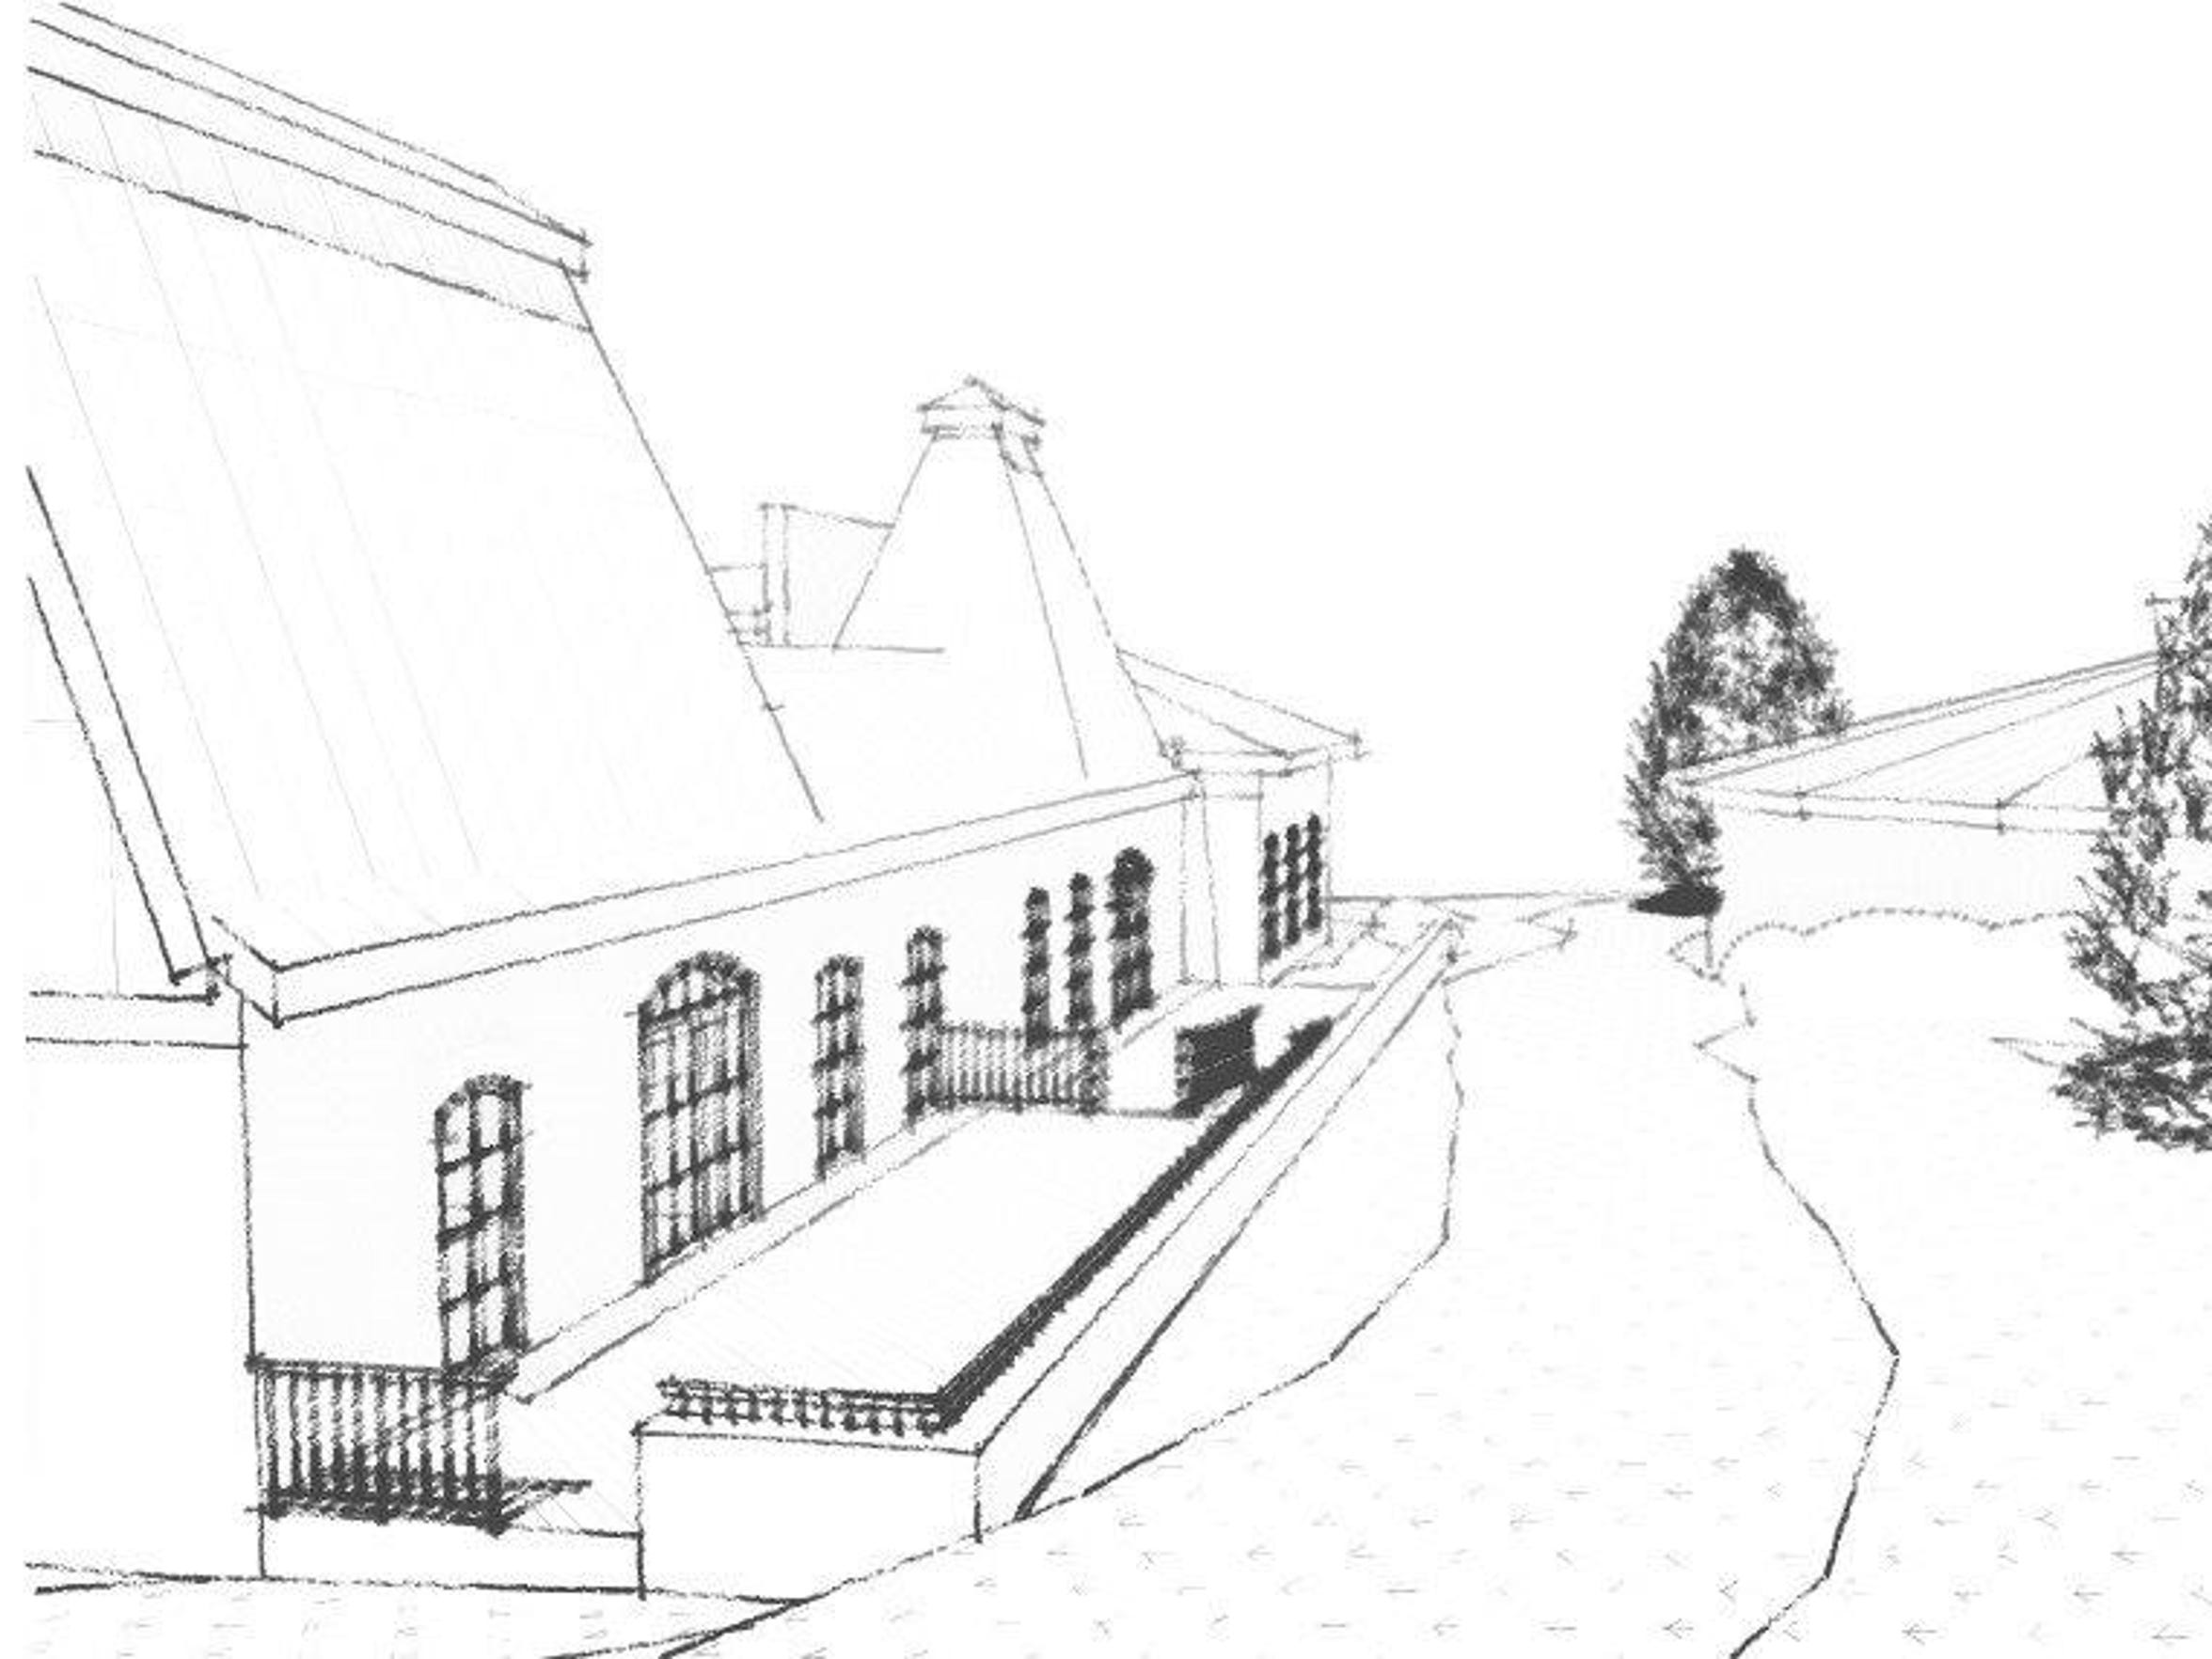 A sketch of a refurbished Waterworks building on Gaines Street. The Cultural Plan Advisory Committee wants to use about $2 million in CRA funds to refurbish the building for arts uses.